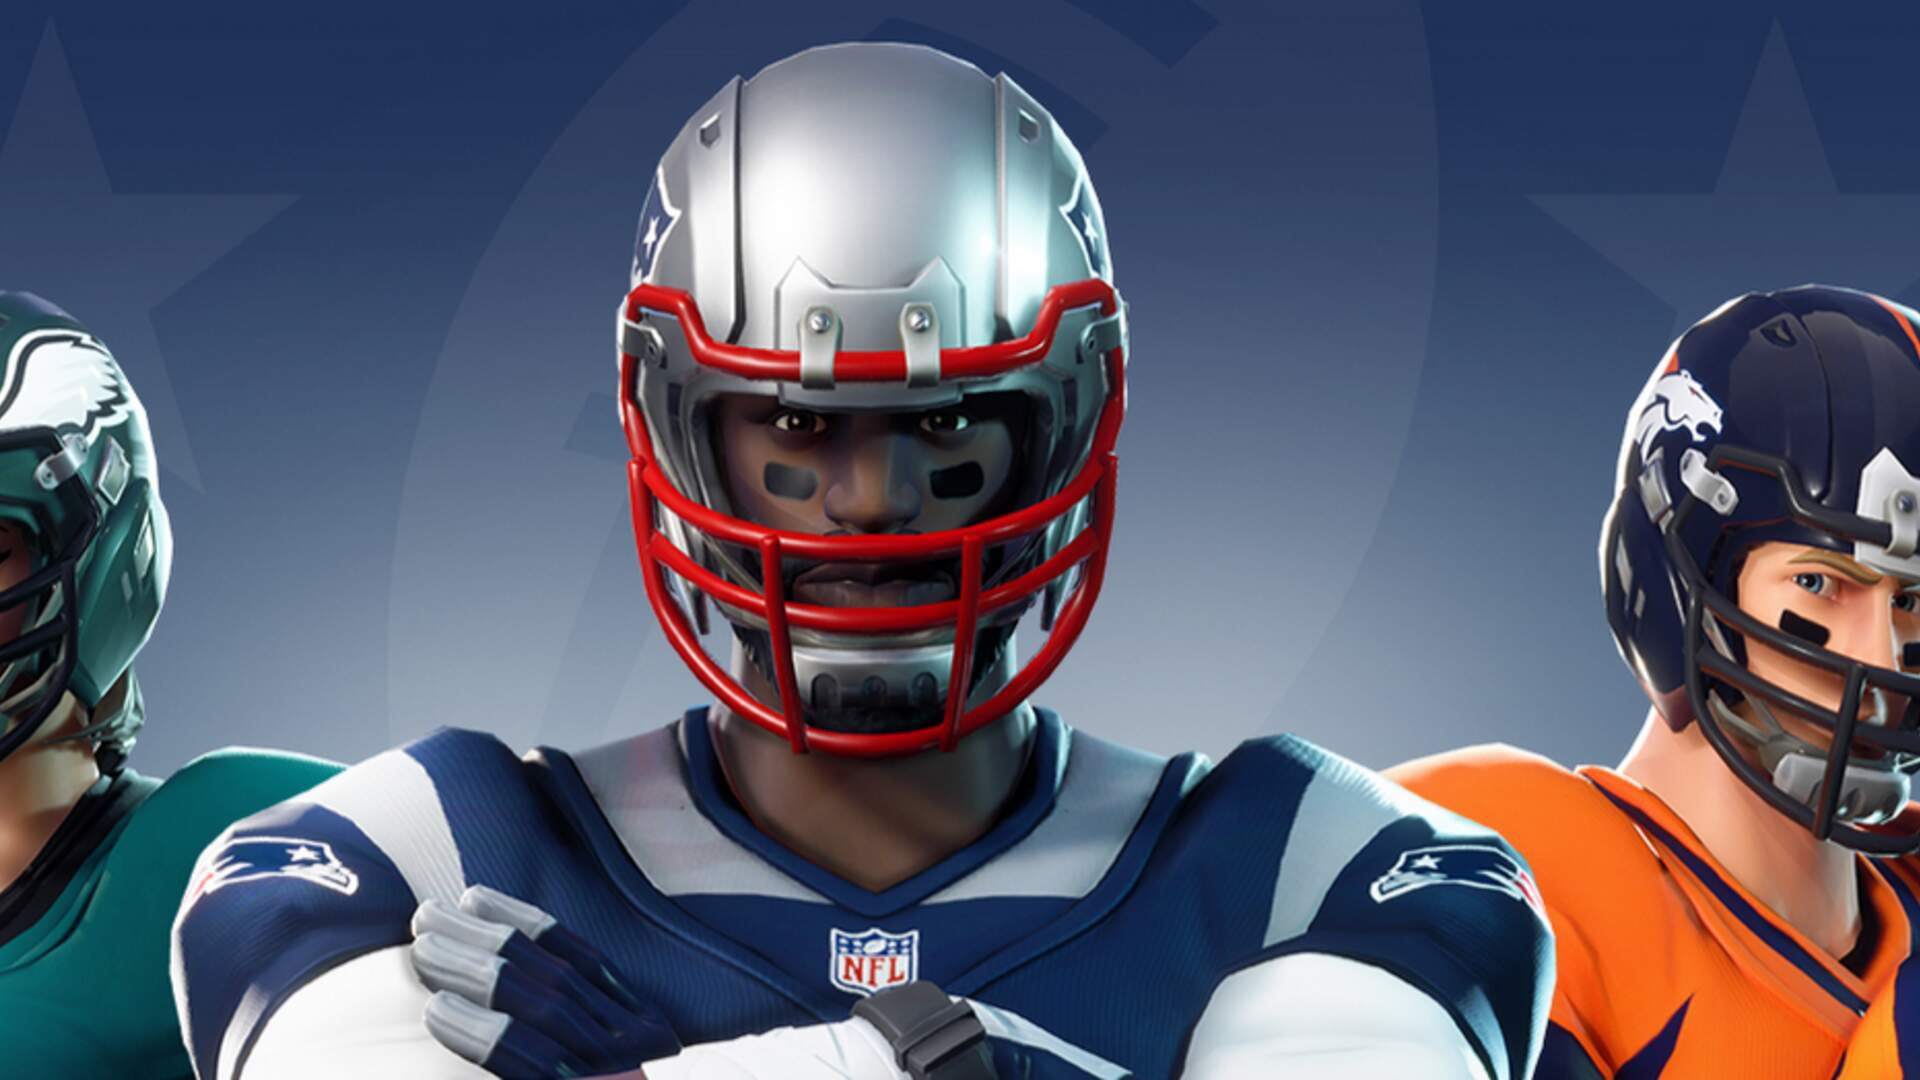 Fortnite's NFL Skins Brought Out the Worst in Players